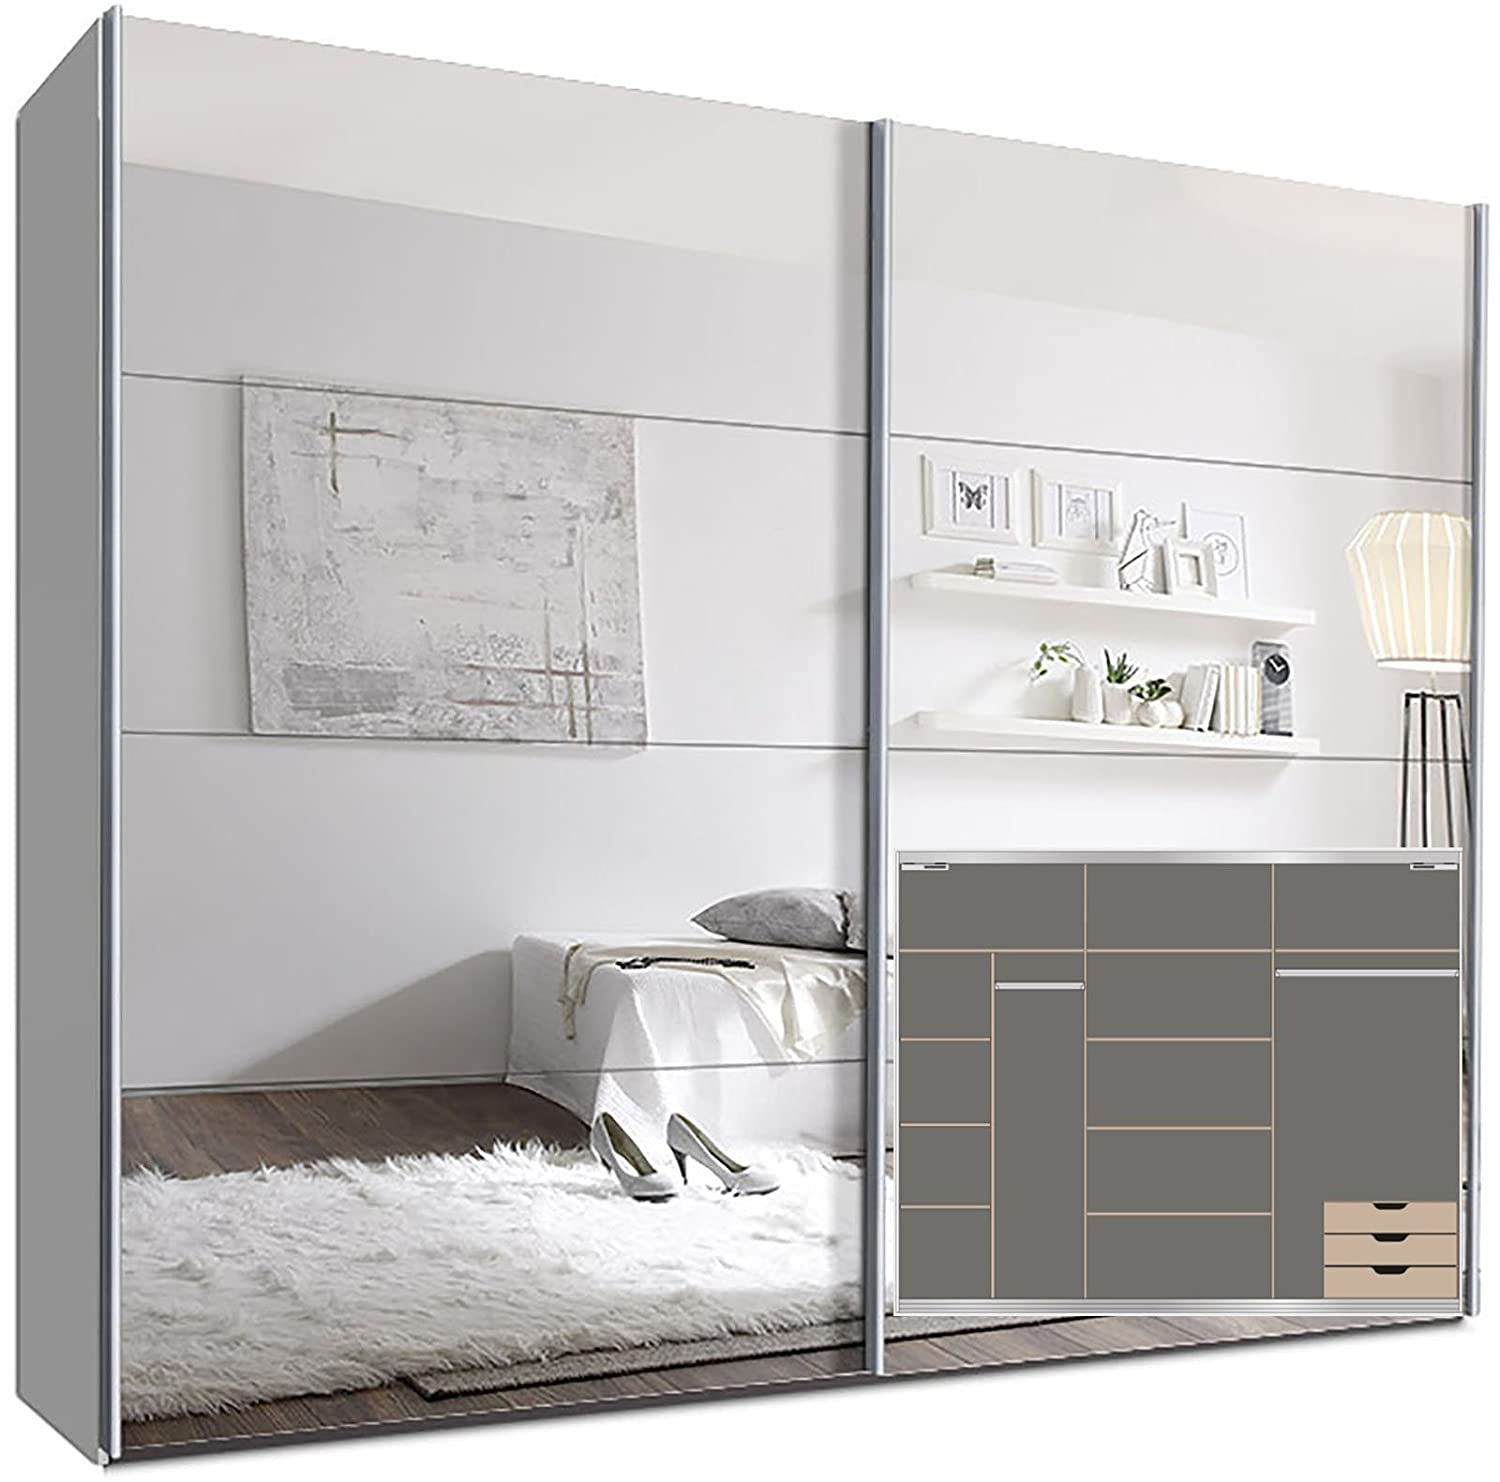 schwebet renschrank switchbox 270 cm wei mit spiegelt ren inkl zubeh r g nstig. Black Bedroom Furniture Sets. Home Design Ideas